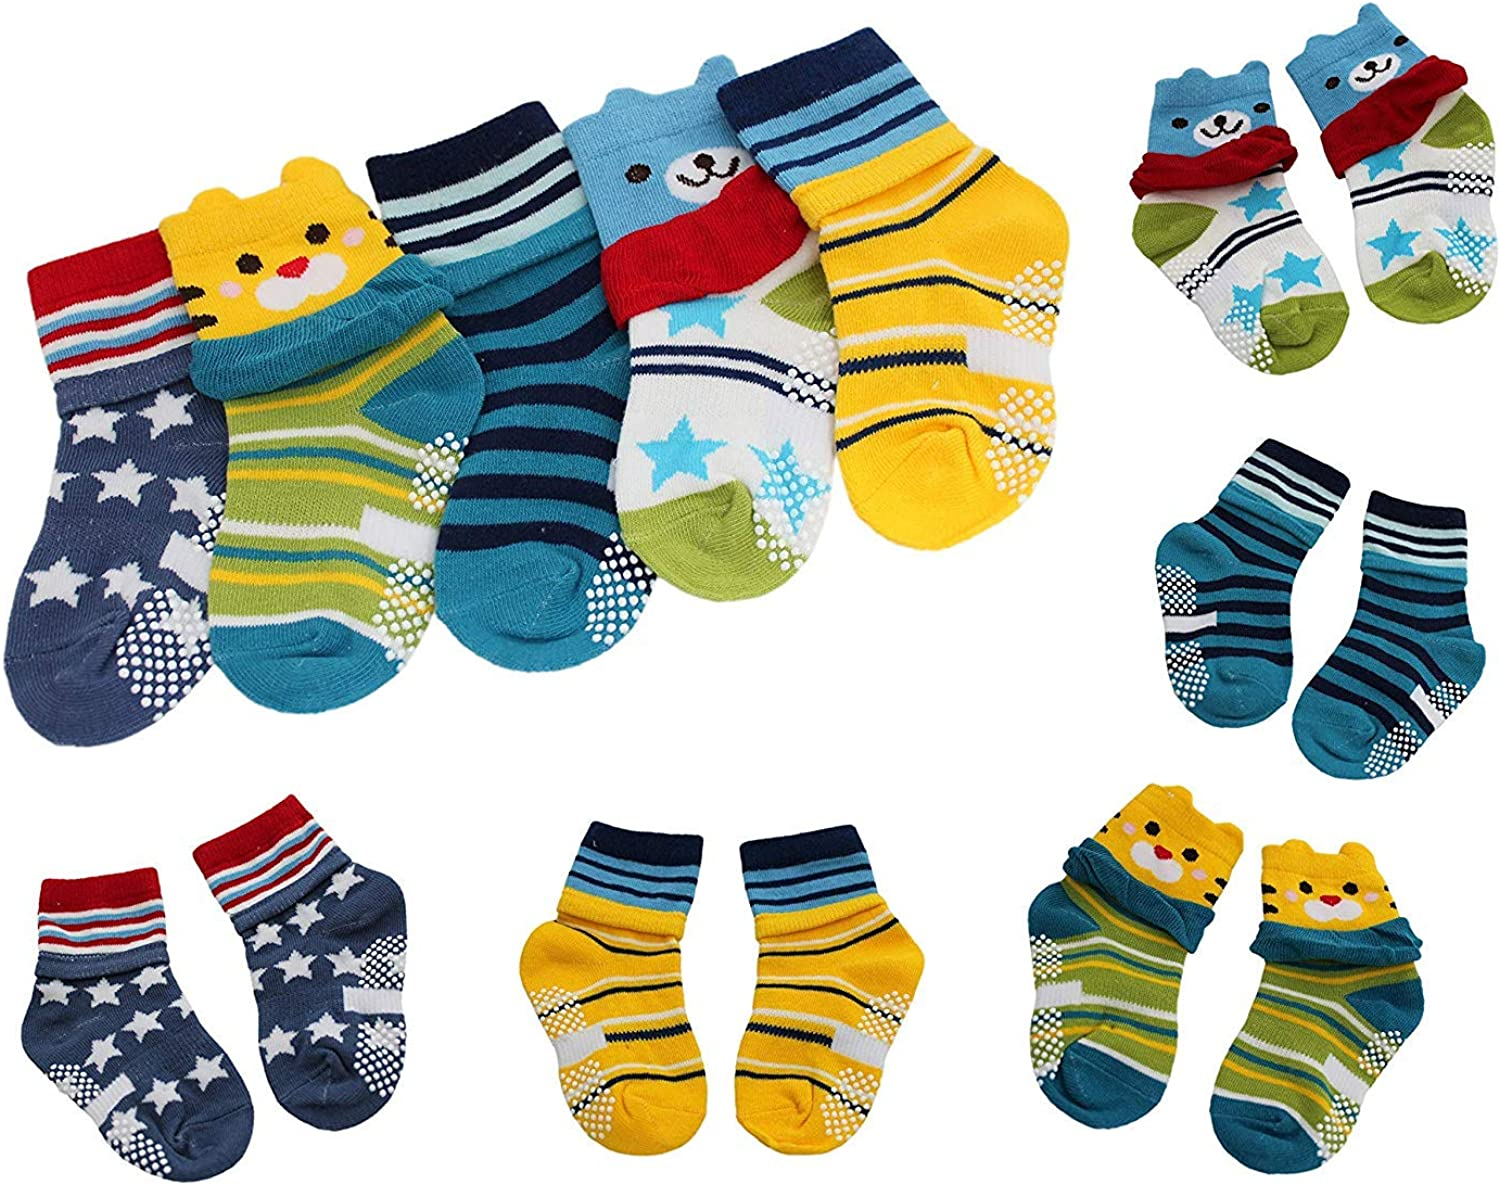 5 Pairs Baby Boy Girl Bears Stars Stripes Non-slip Ankle Socks Age 1 2 3